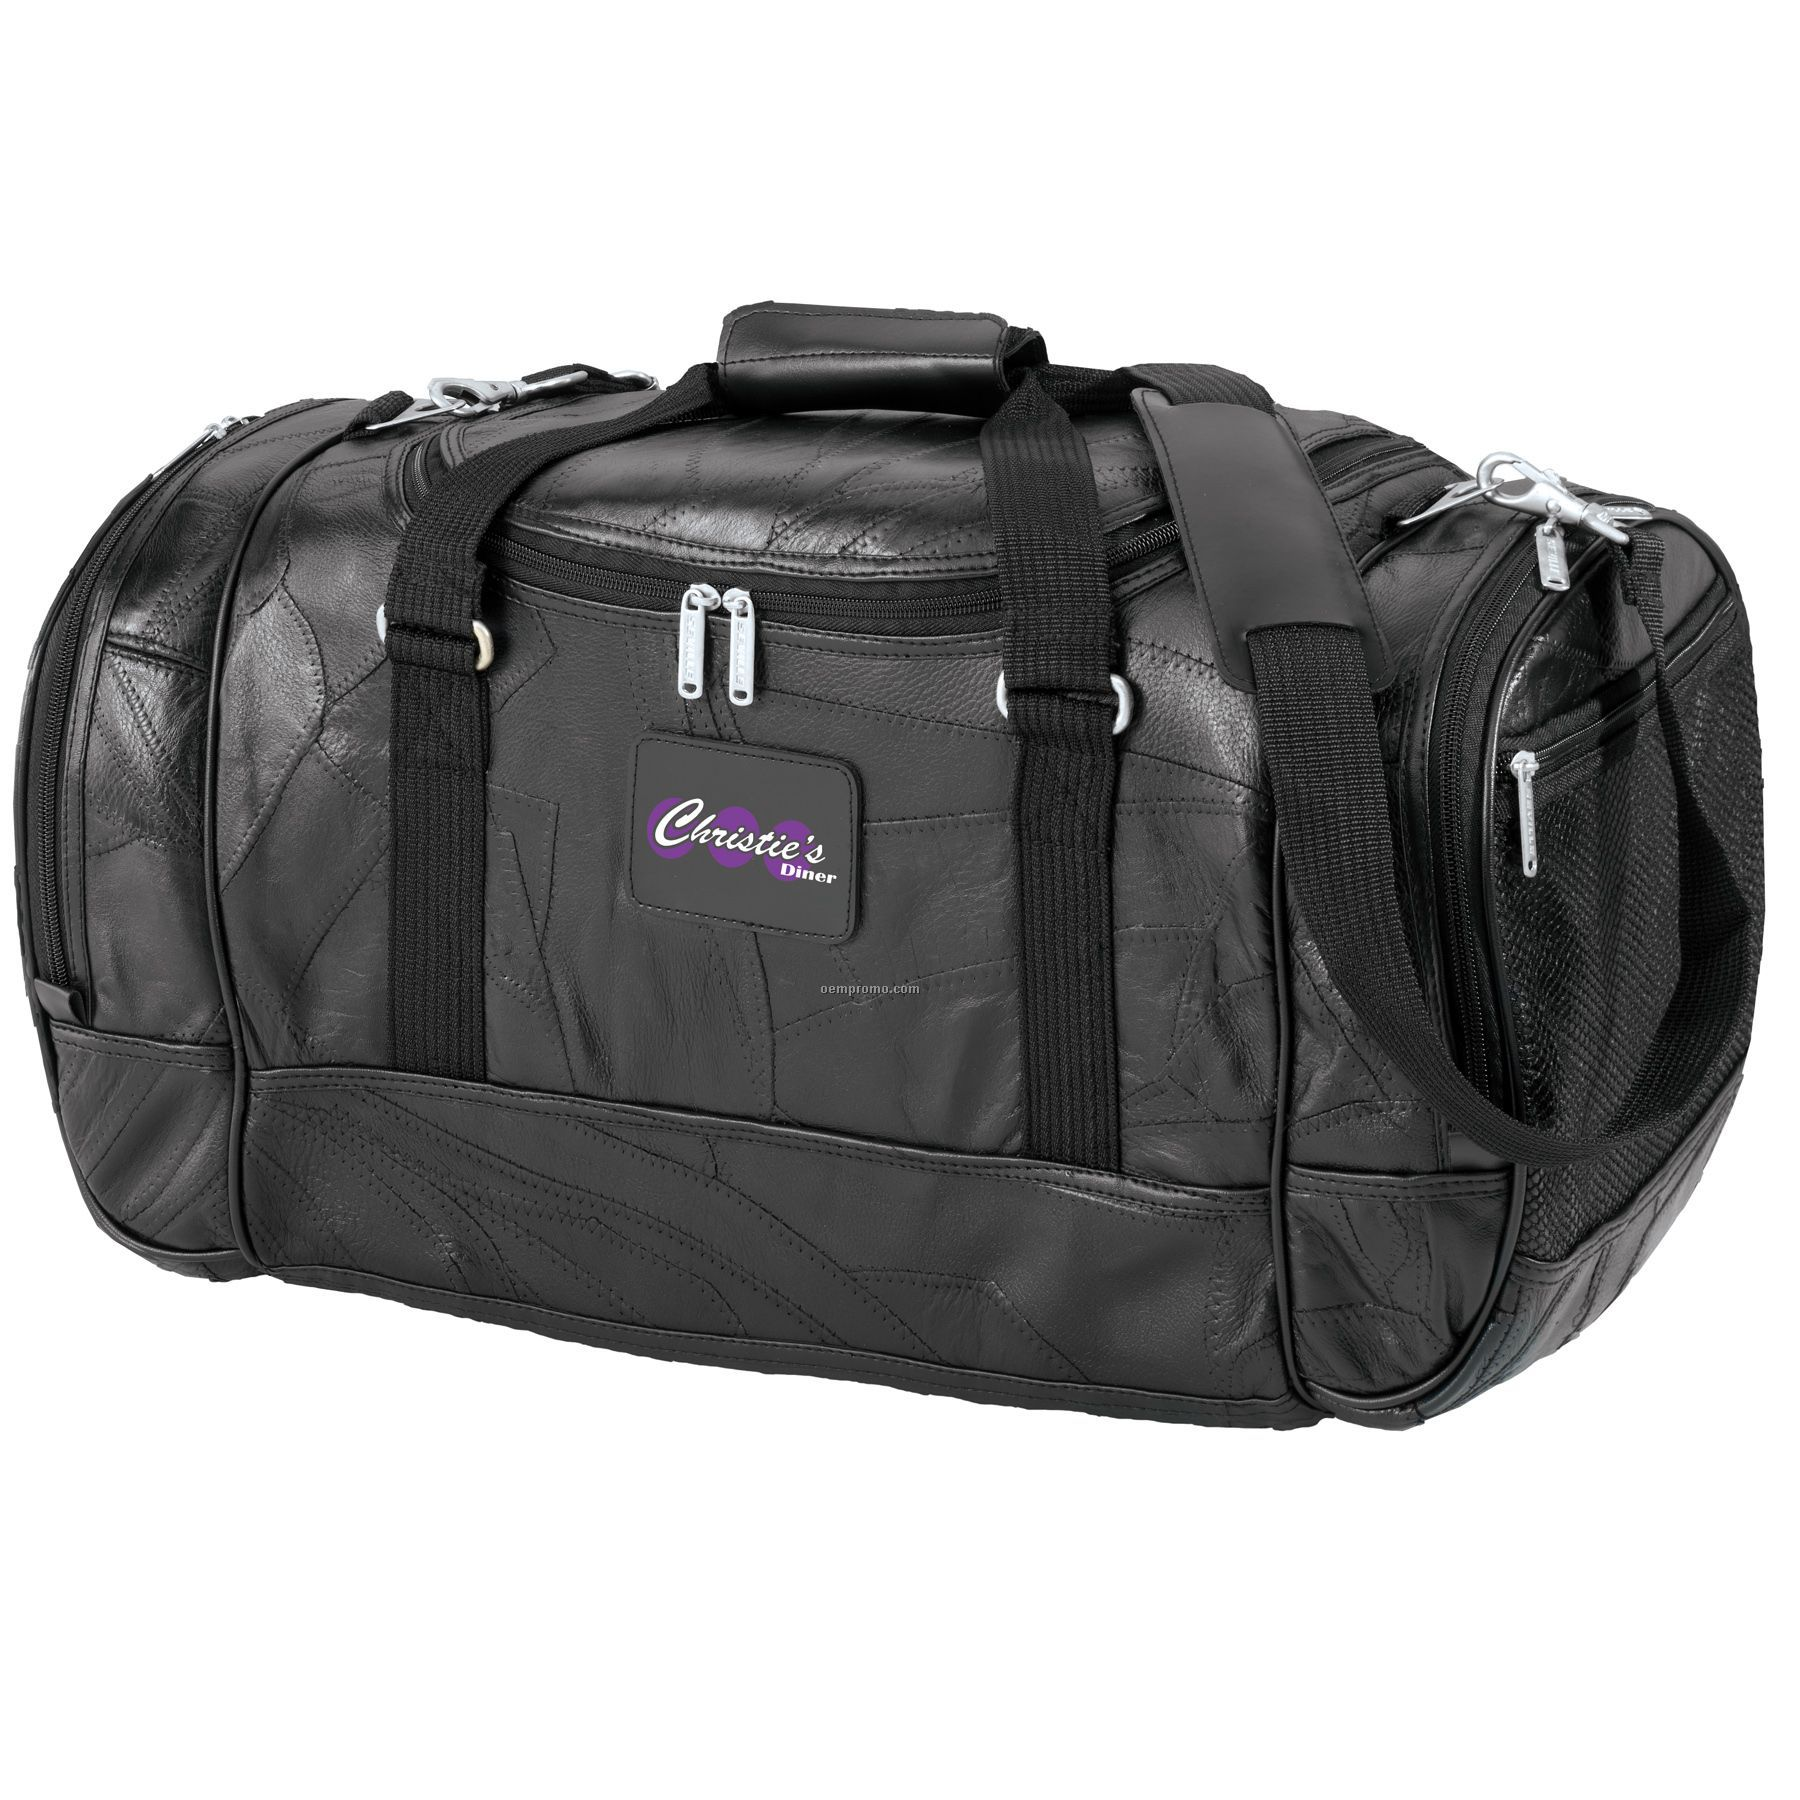 Legacy Leather Deluxe Travel Duffel Bag